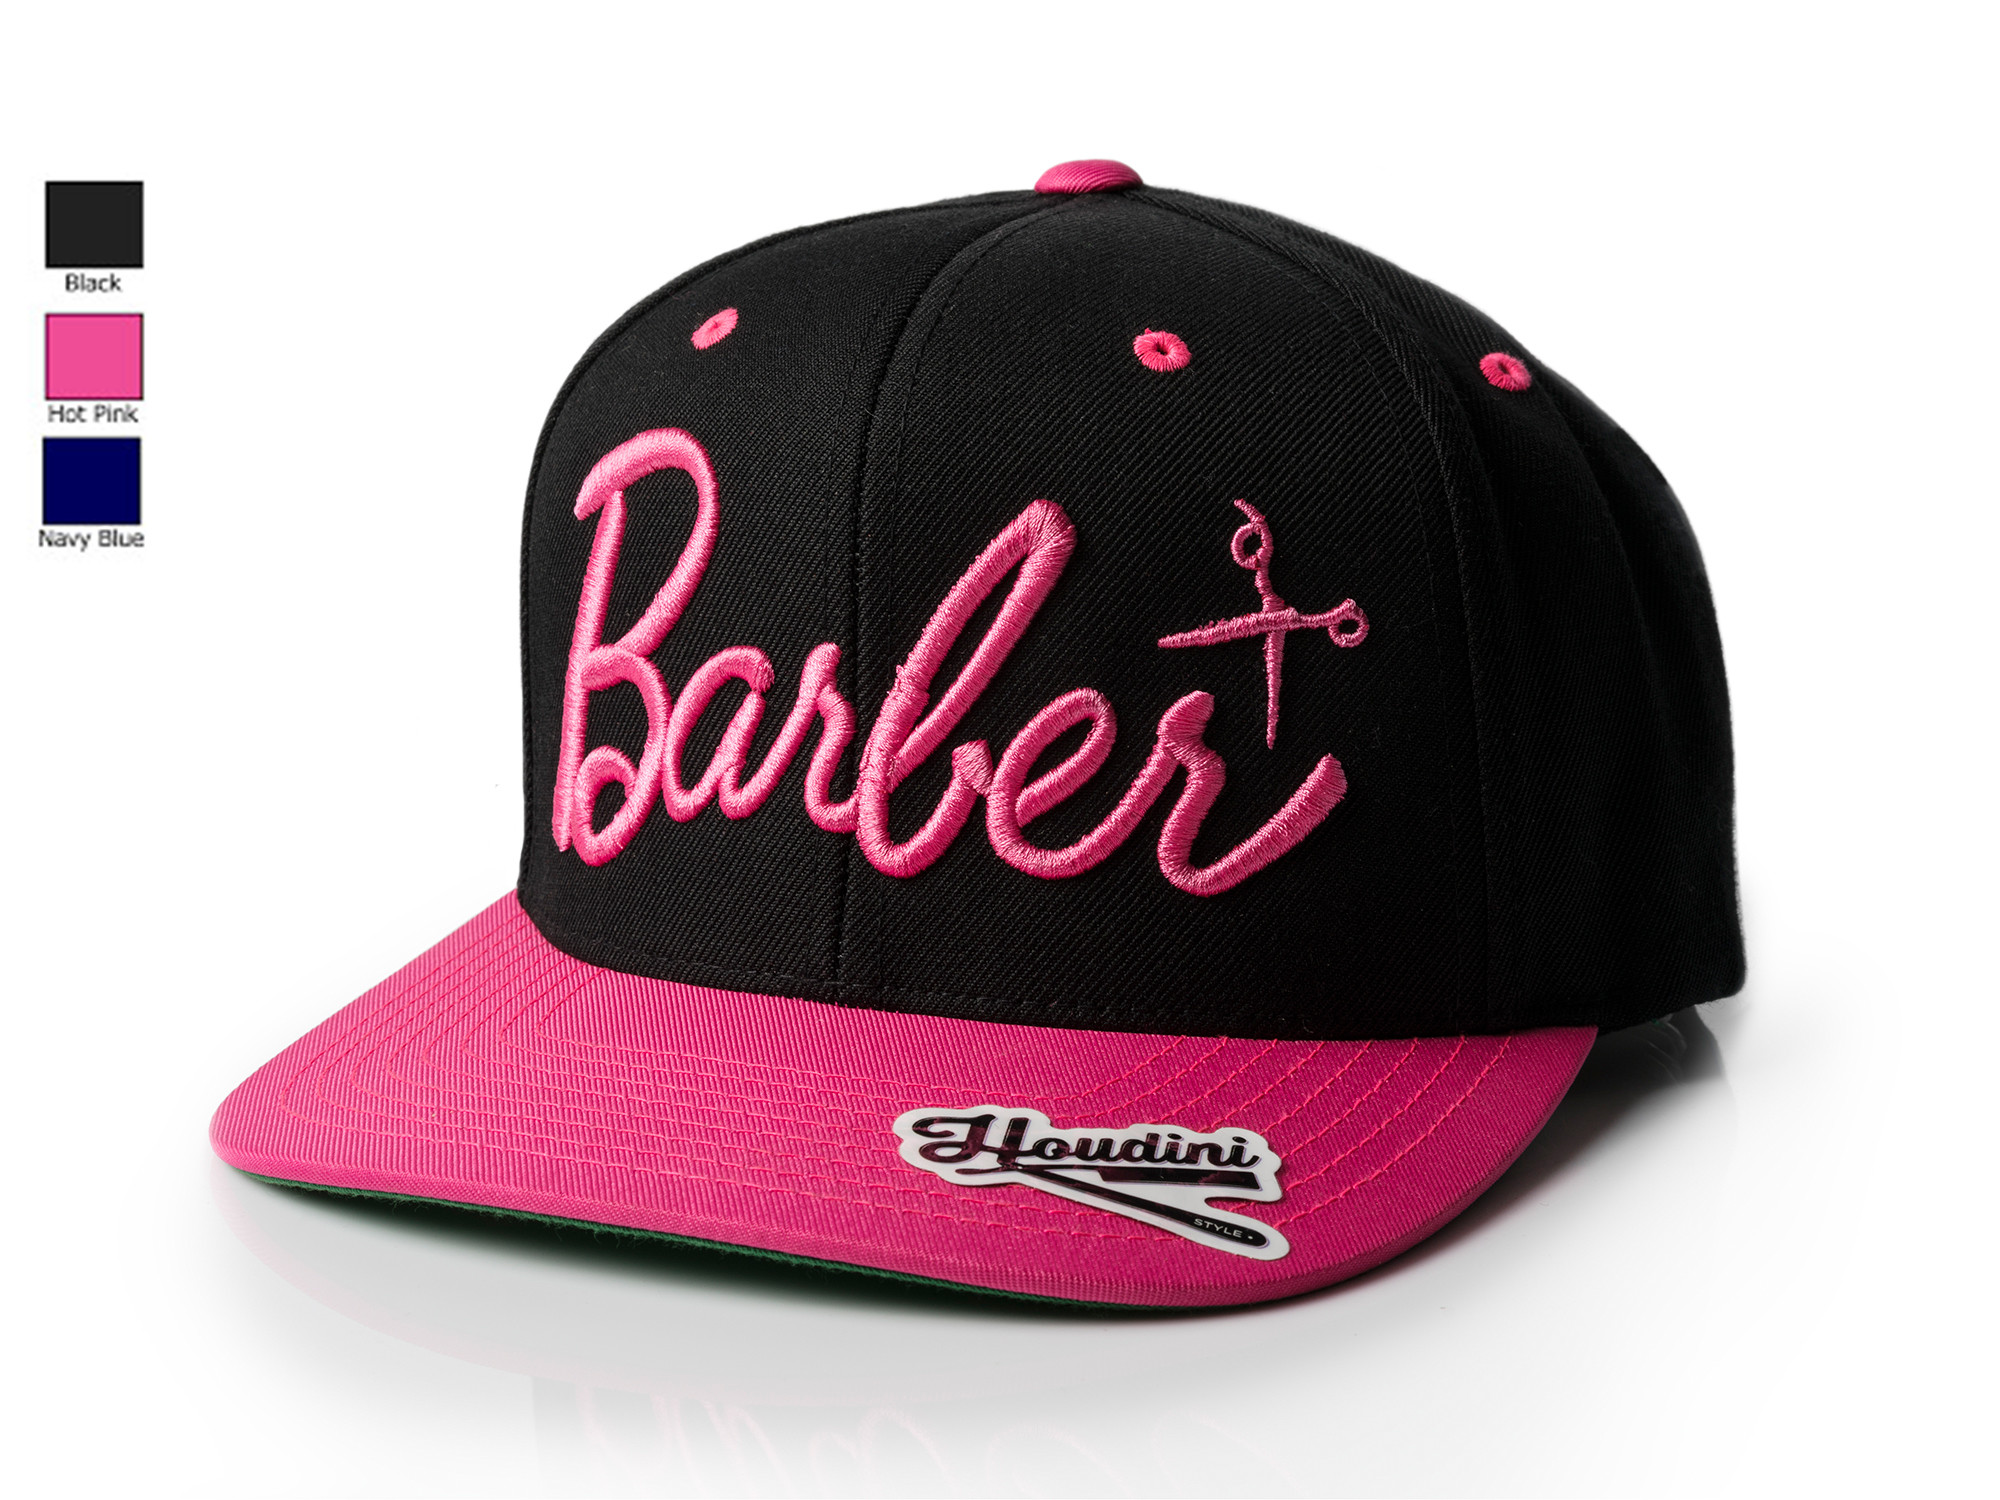 Barber barbie 3 colors